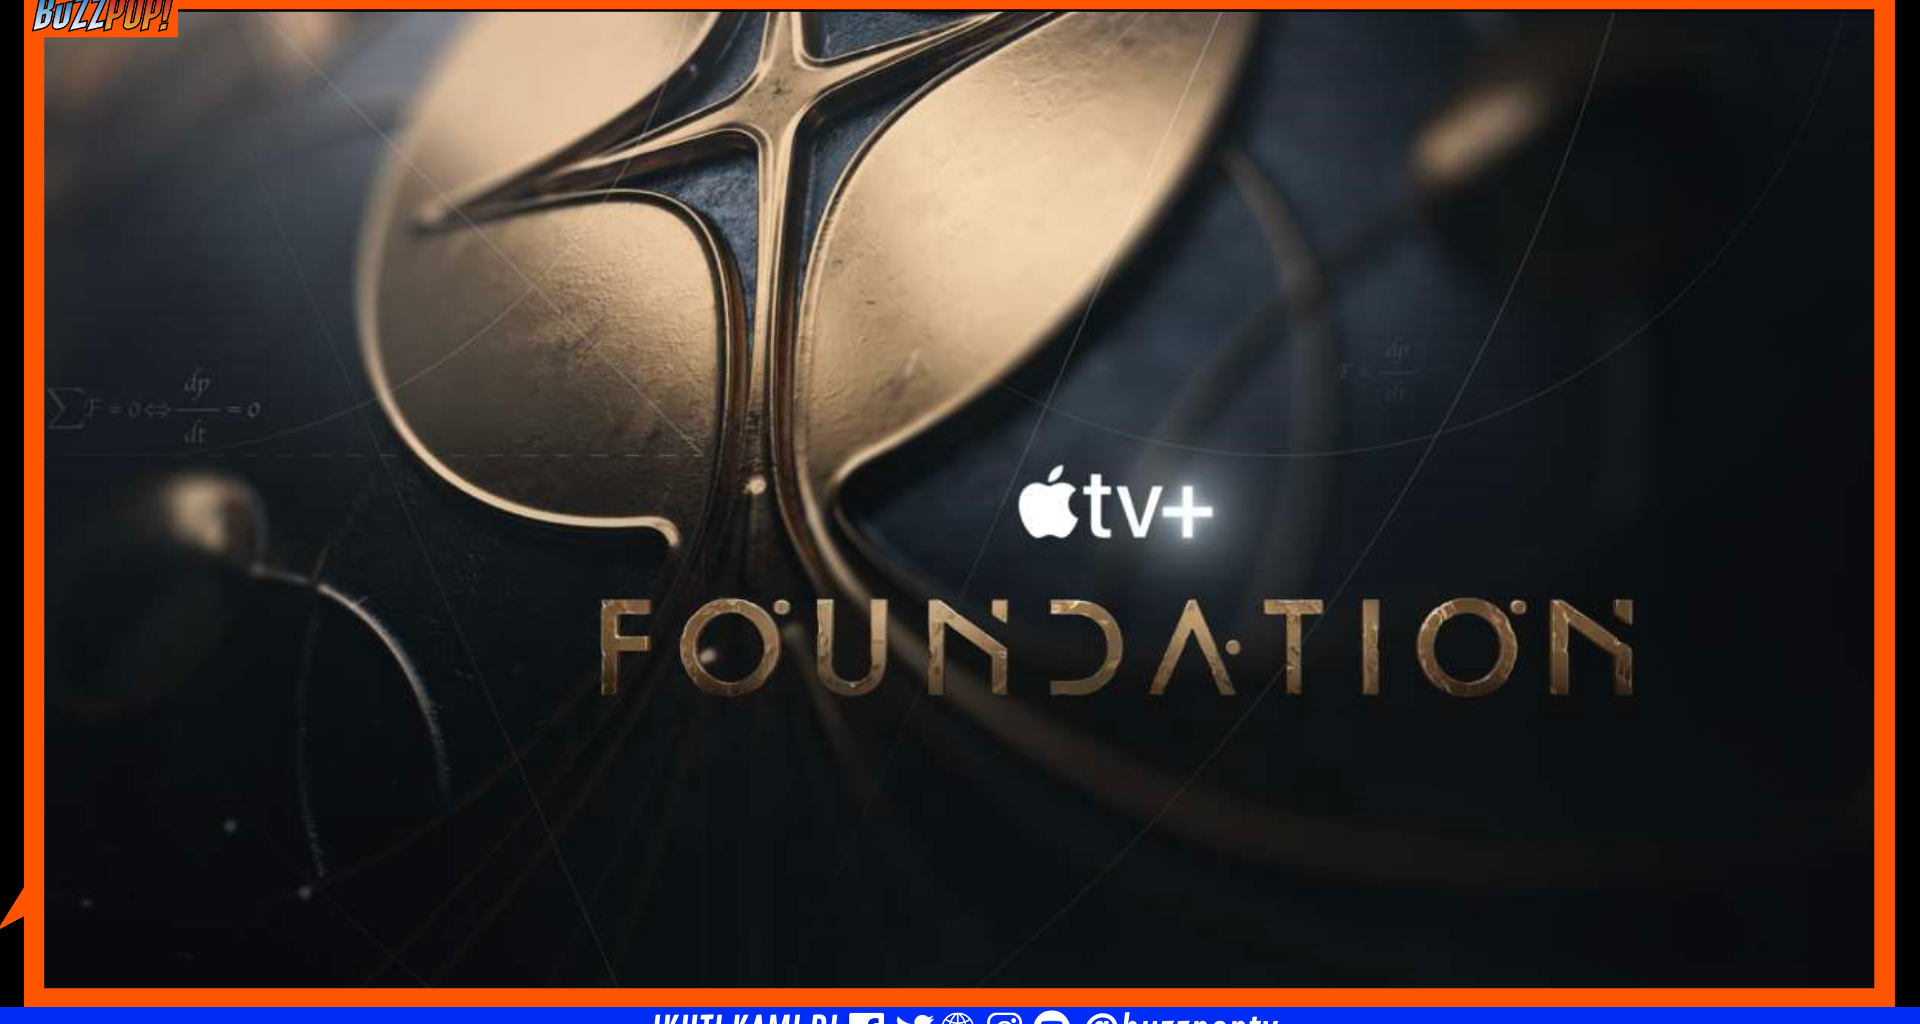 FOUNDATION Apple TV+ Isaac Asimov Sci Fi TV Series